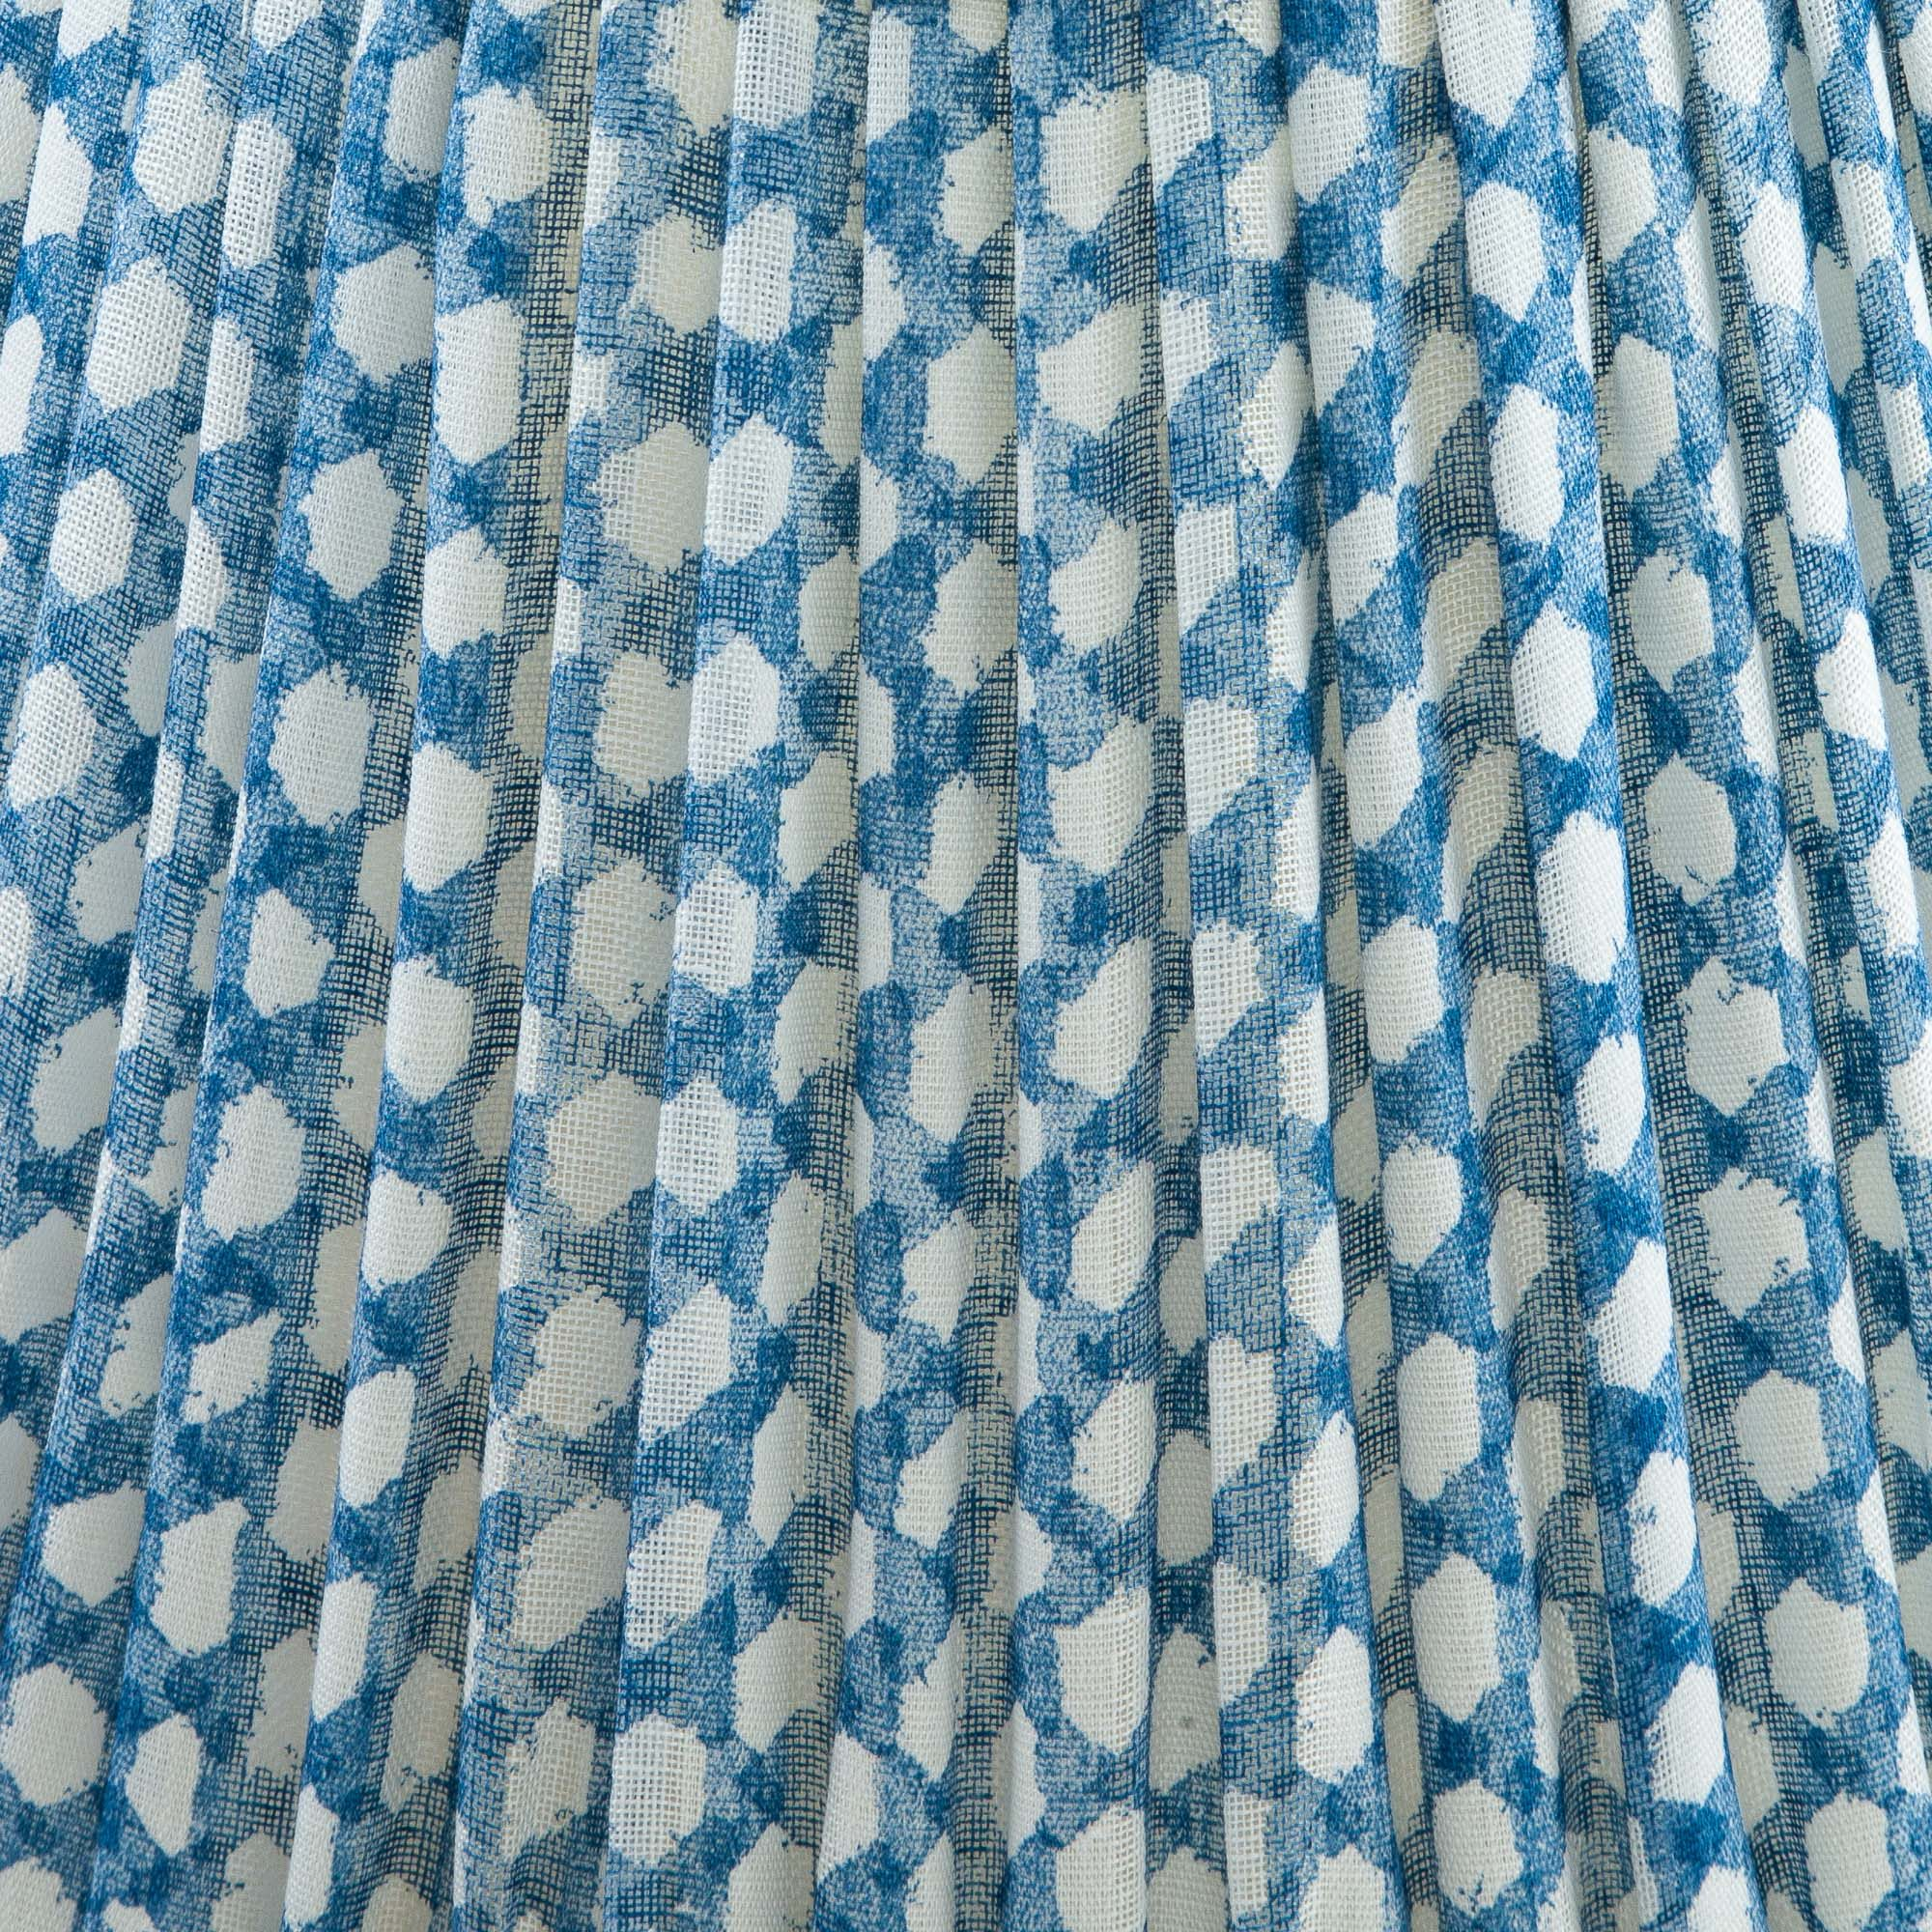 Empire Gathered Lampshade in Blue Wicker 025.jpeg